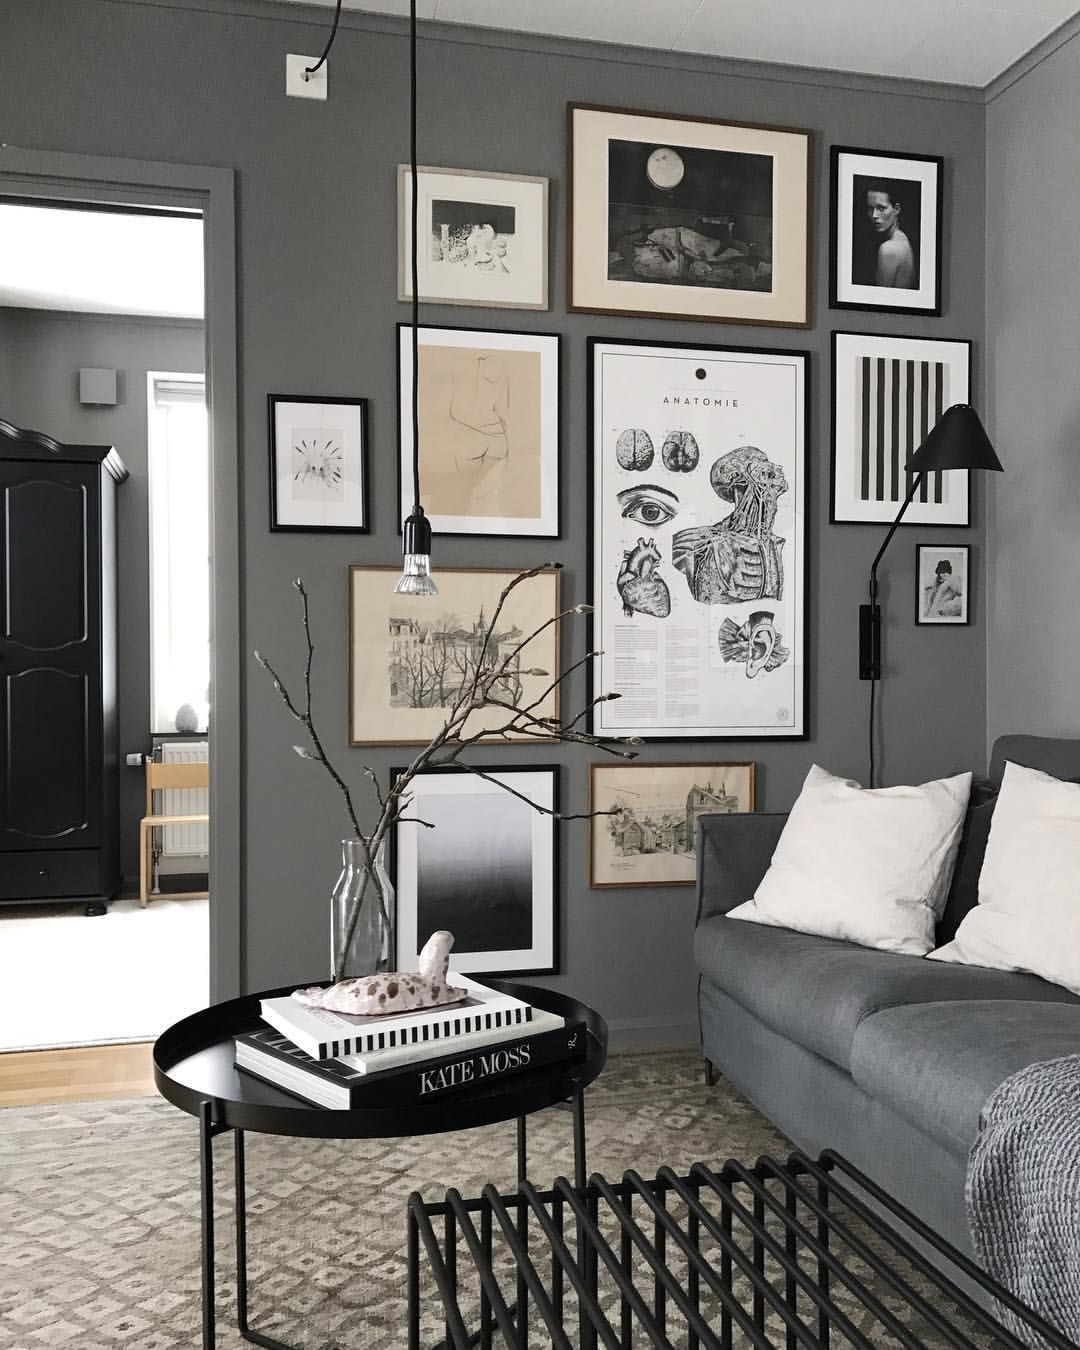 A wall gallery with vintage posters photos abstract prints hannasinspo